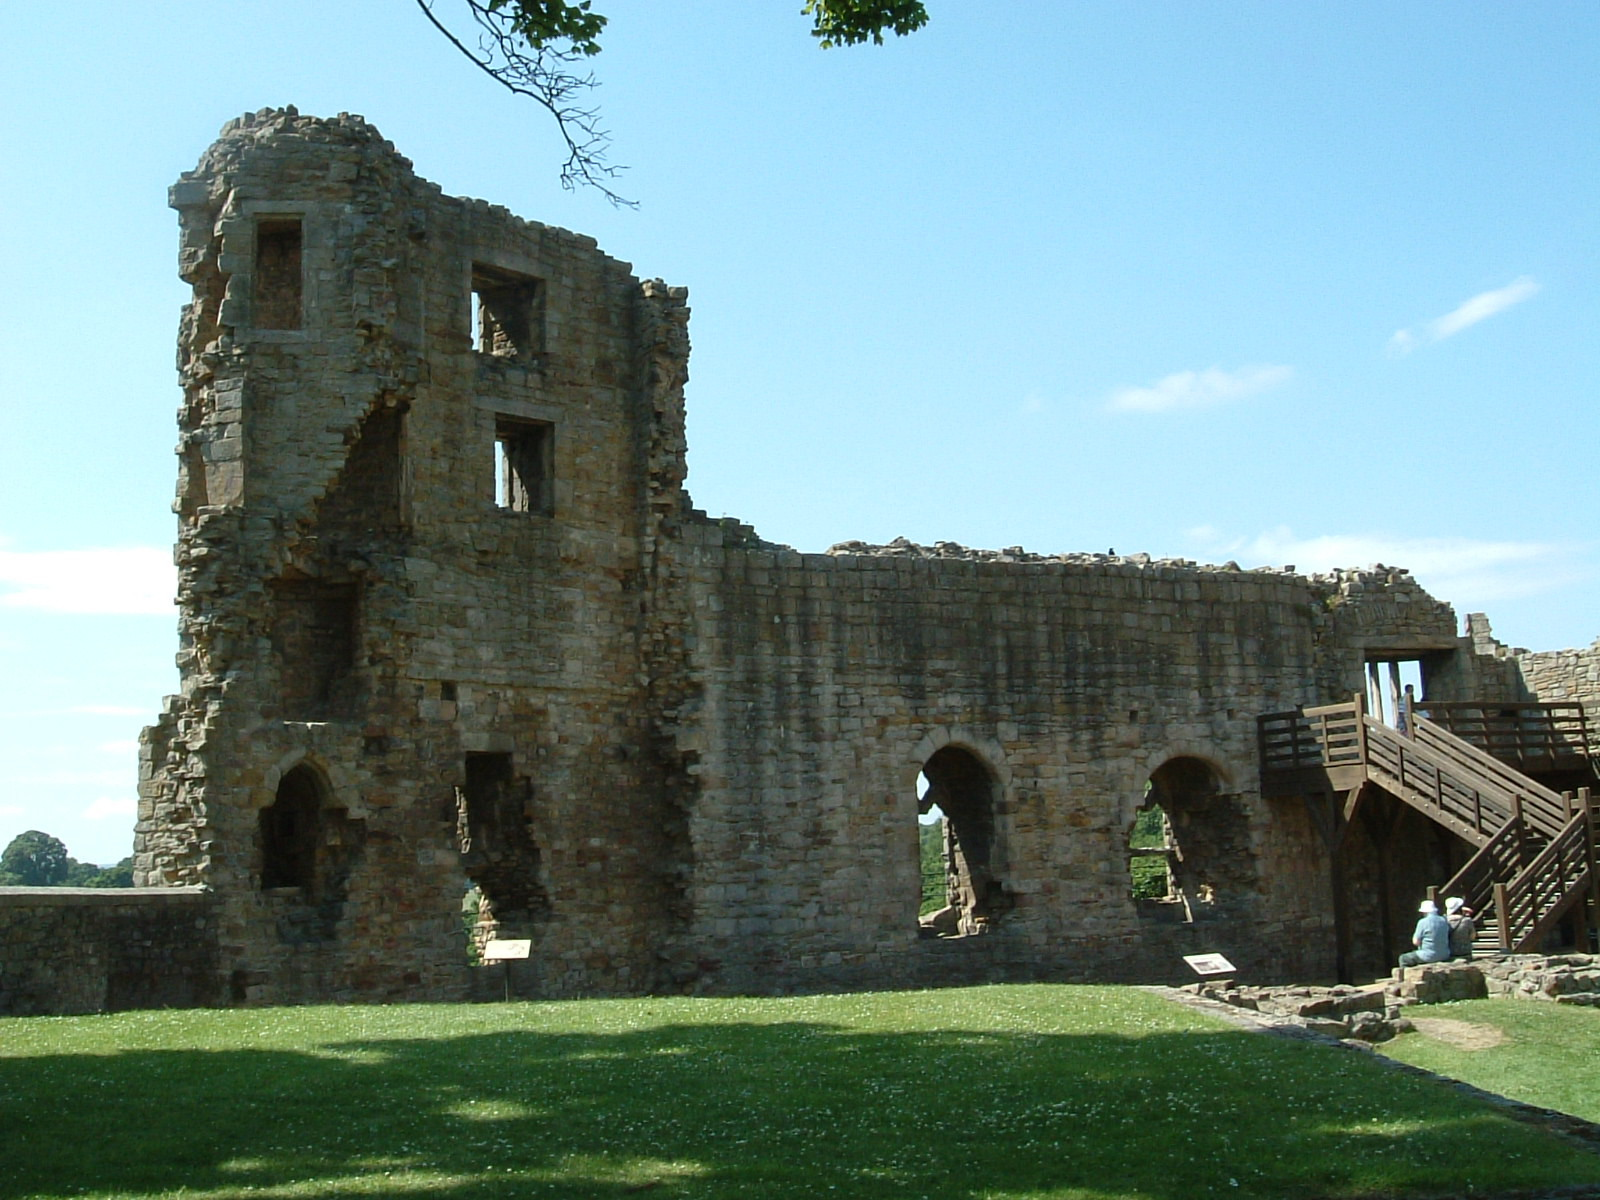 Mortham Tower, Barnard Castle